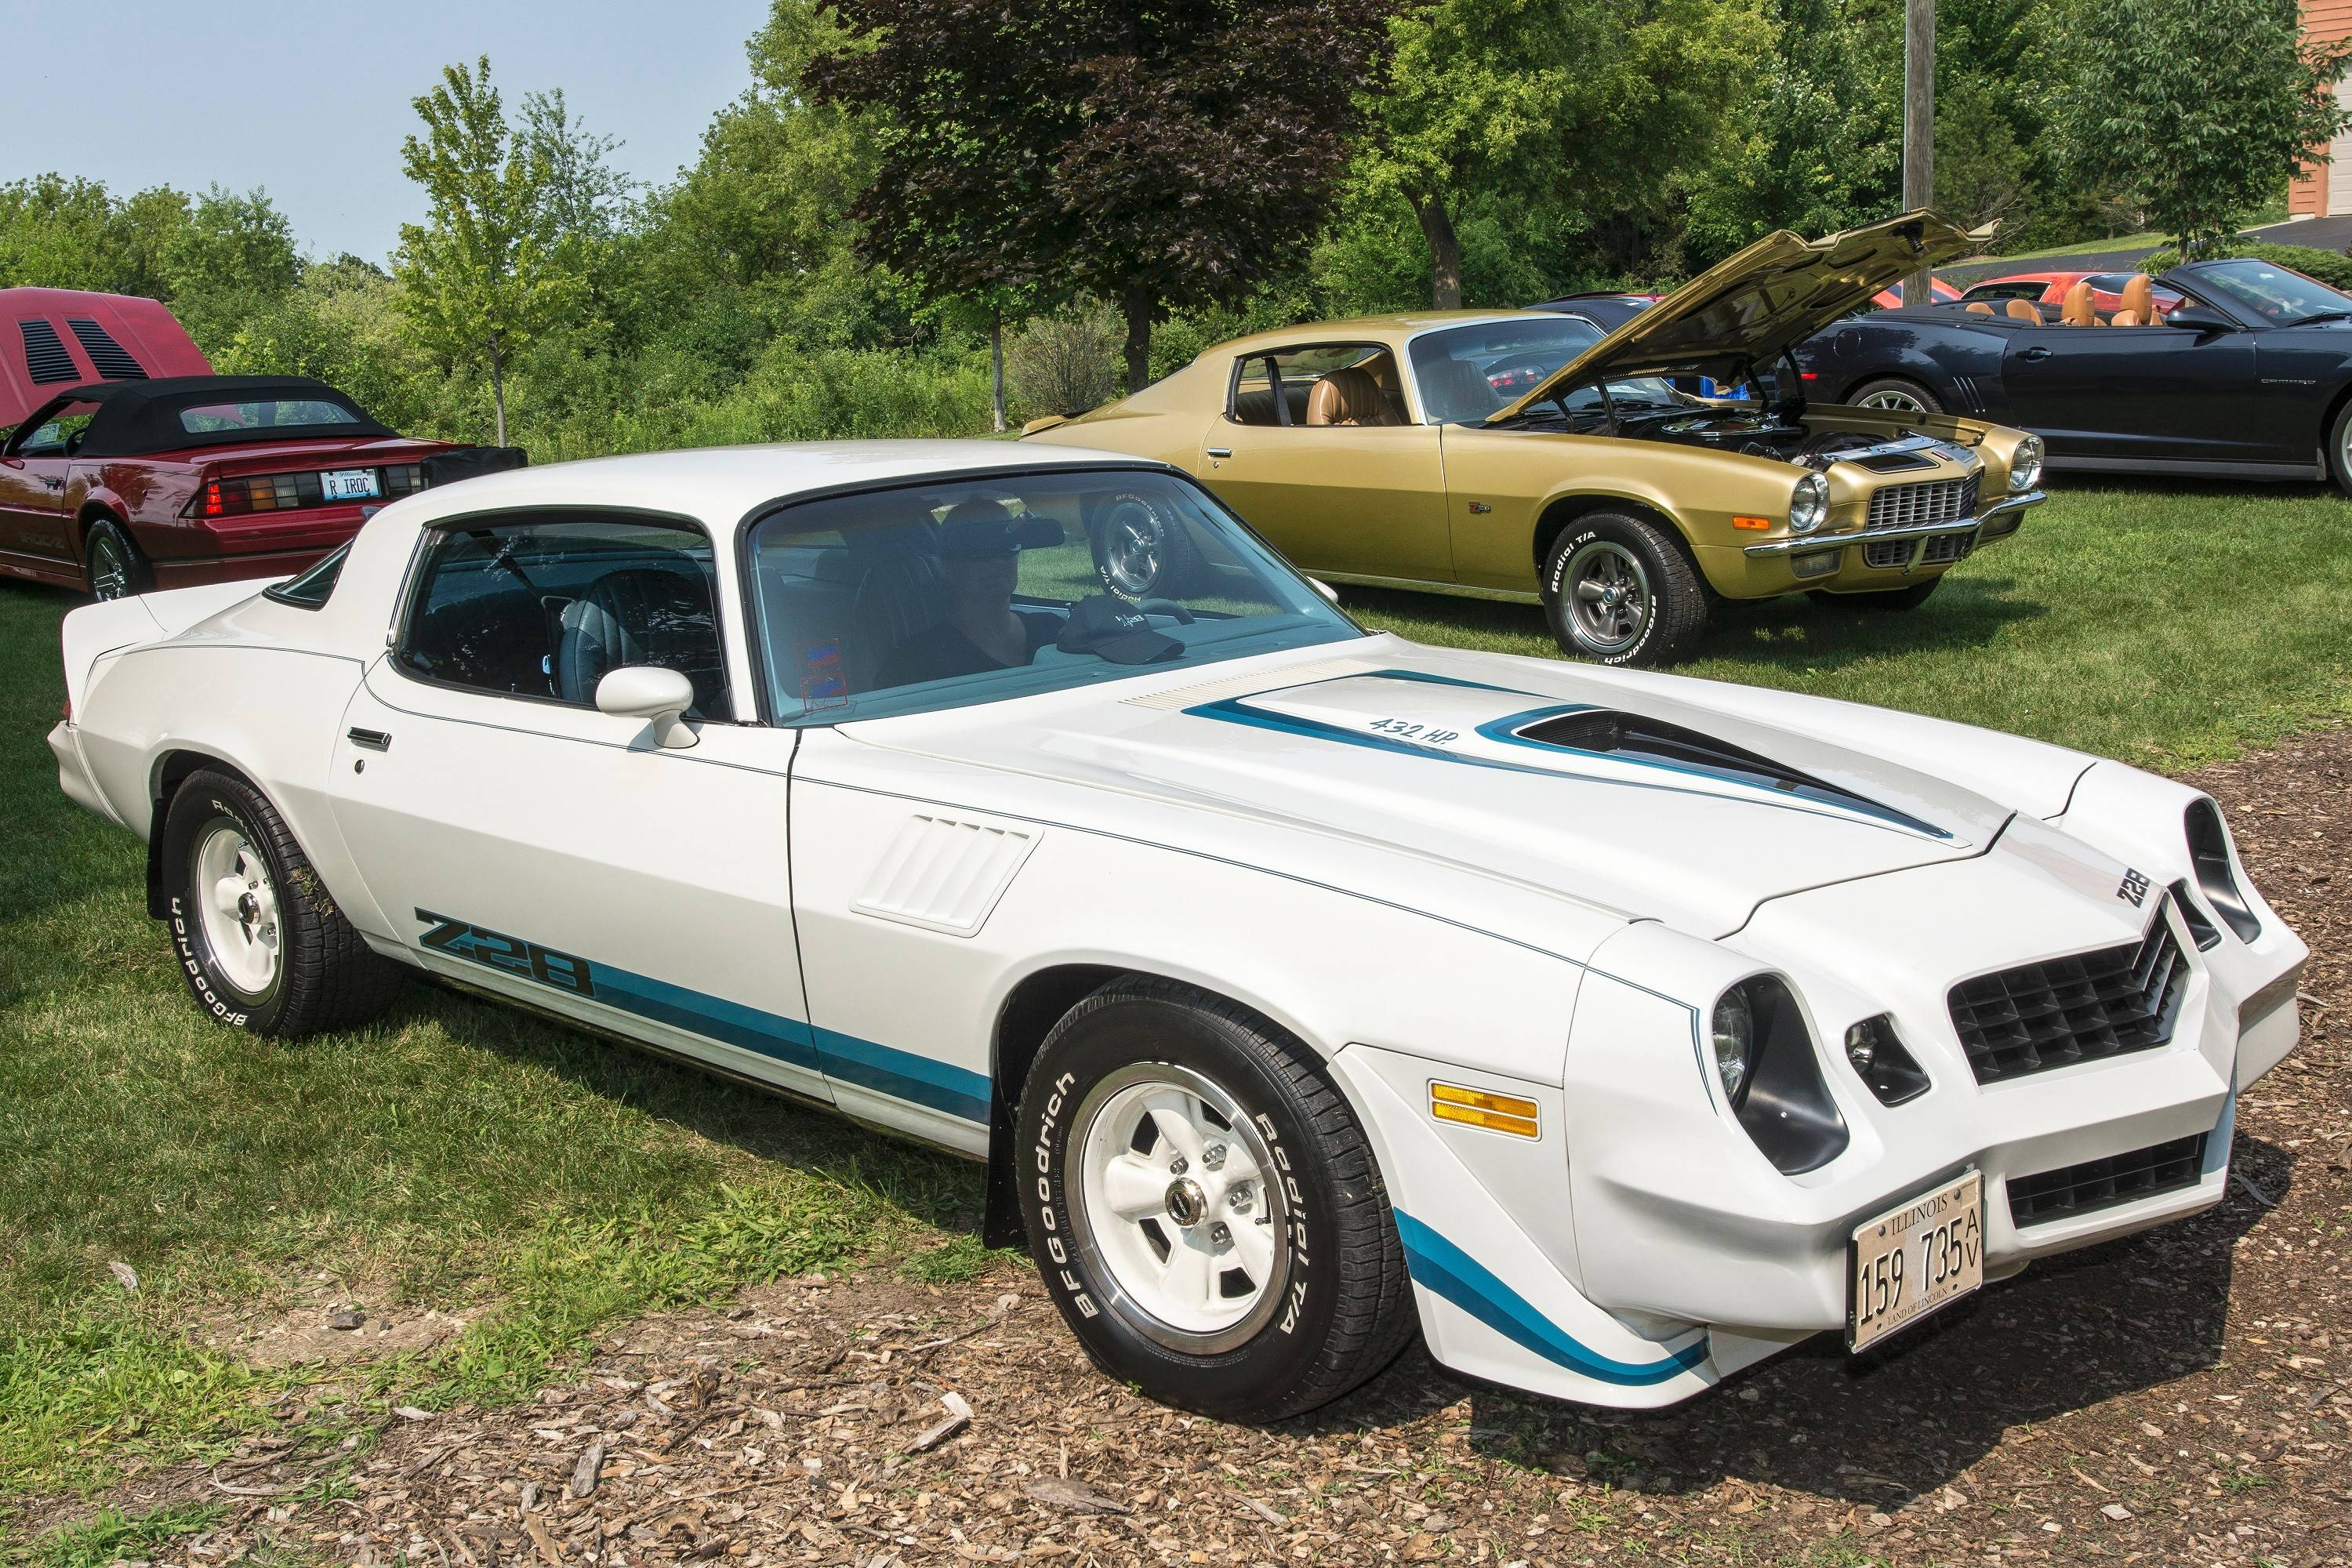 Camarata's Camaro won first place in the Second Generation Modified class at the Illinois Camaro Club's annual show.